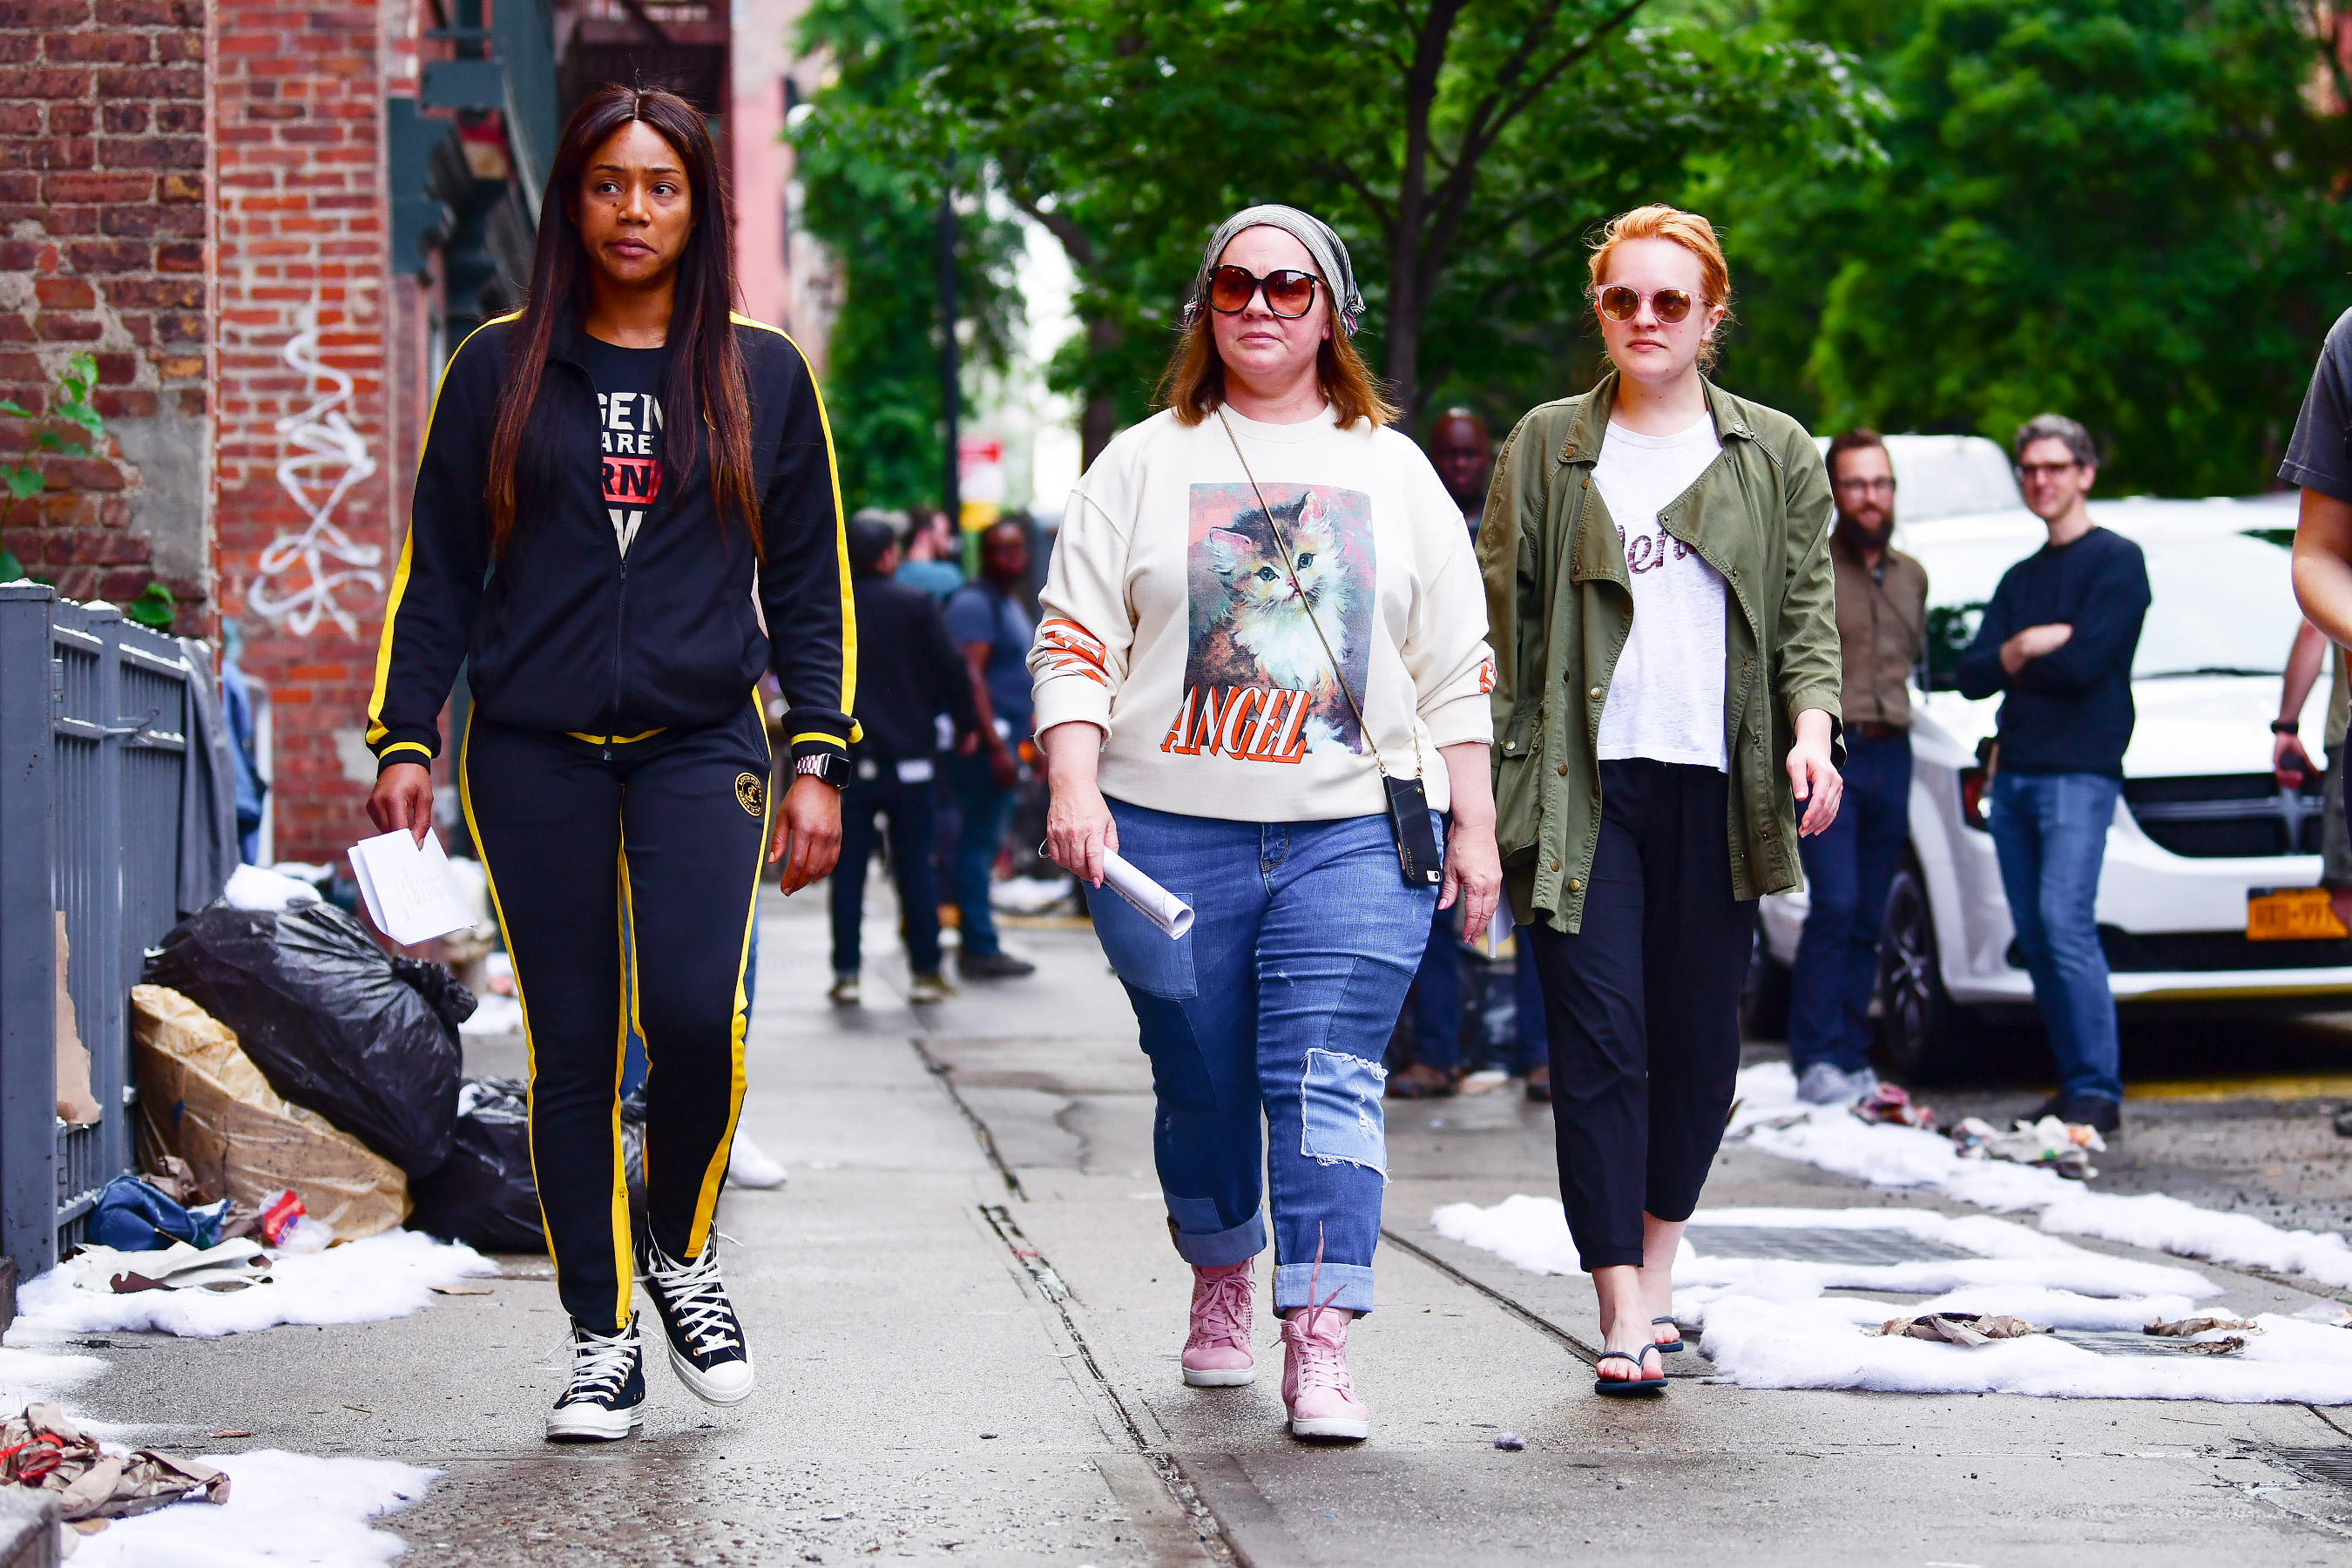 Tiffany Haddish, Melissa McCarthy and Elisabeth Moss are spotted filming The Kitchen in N.Y.C.